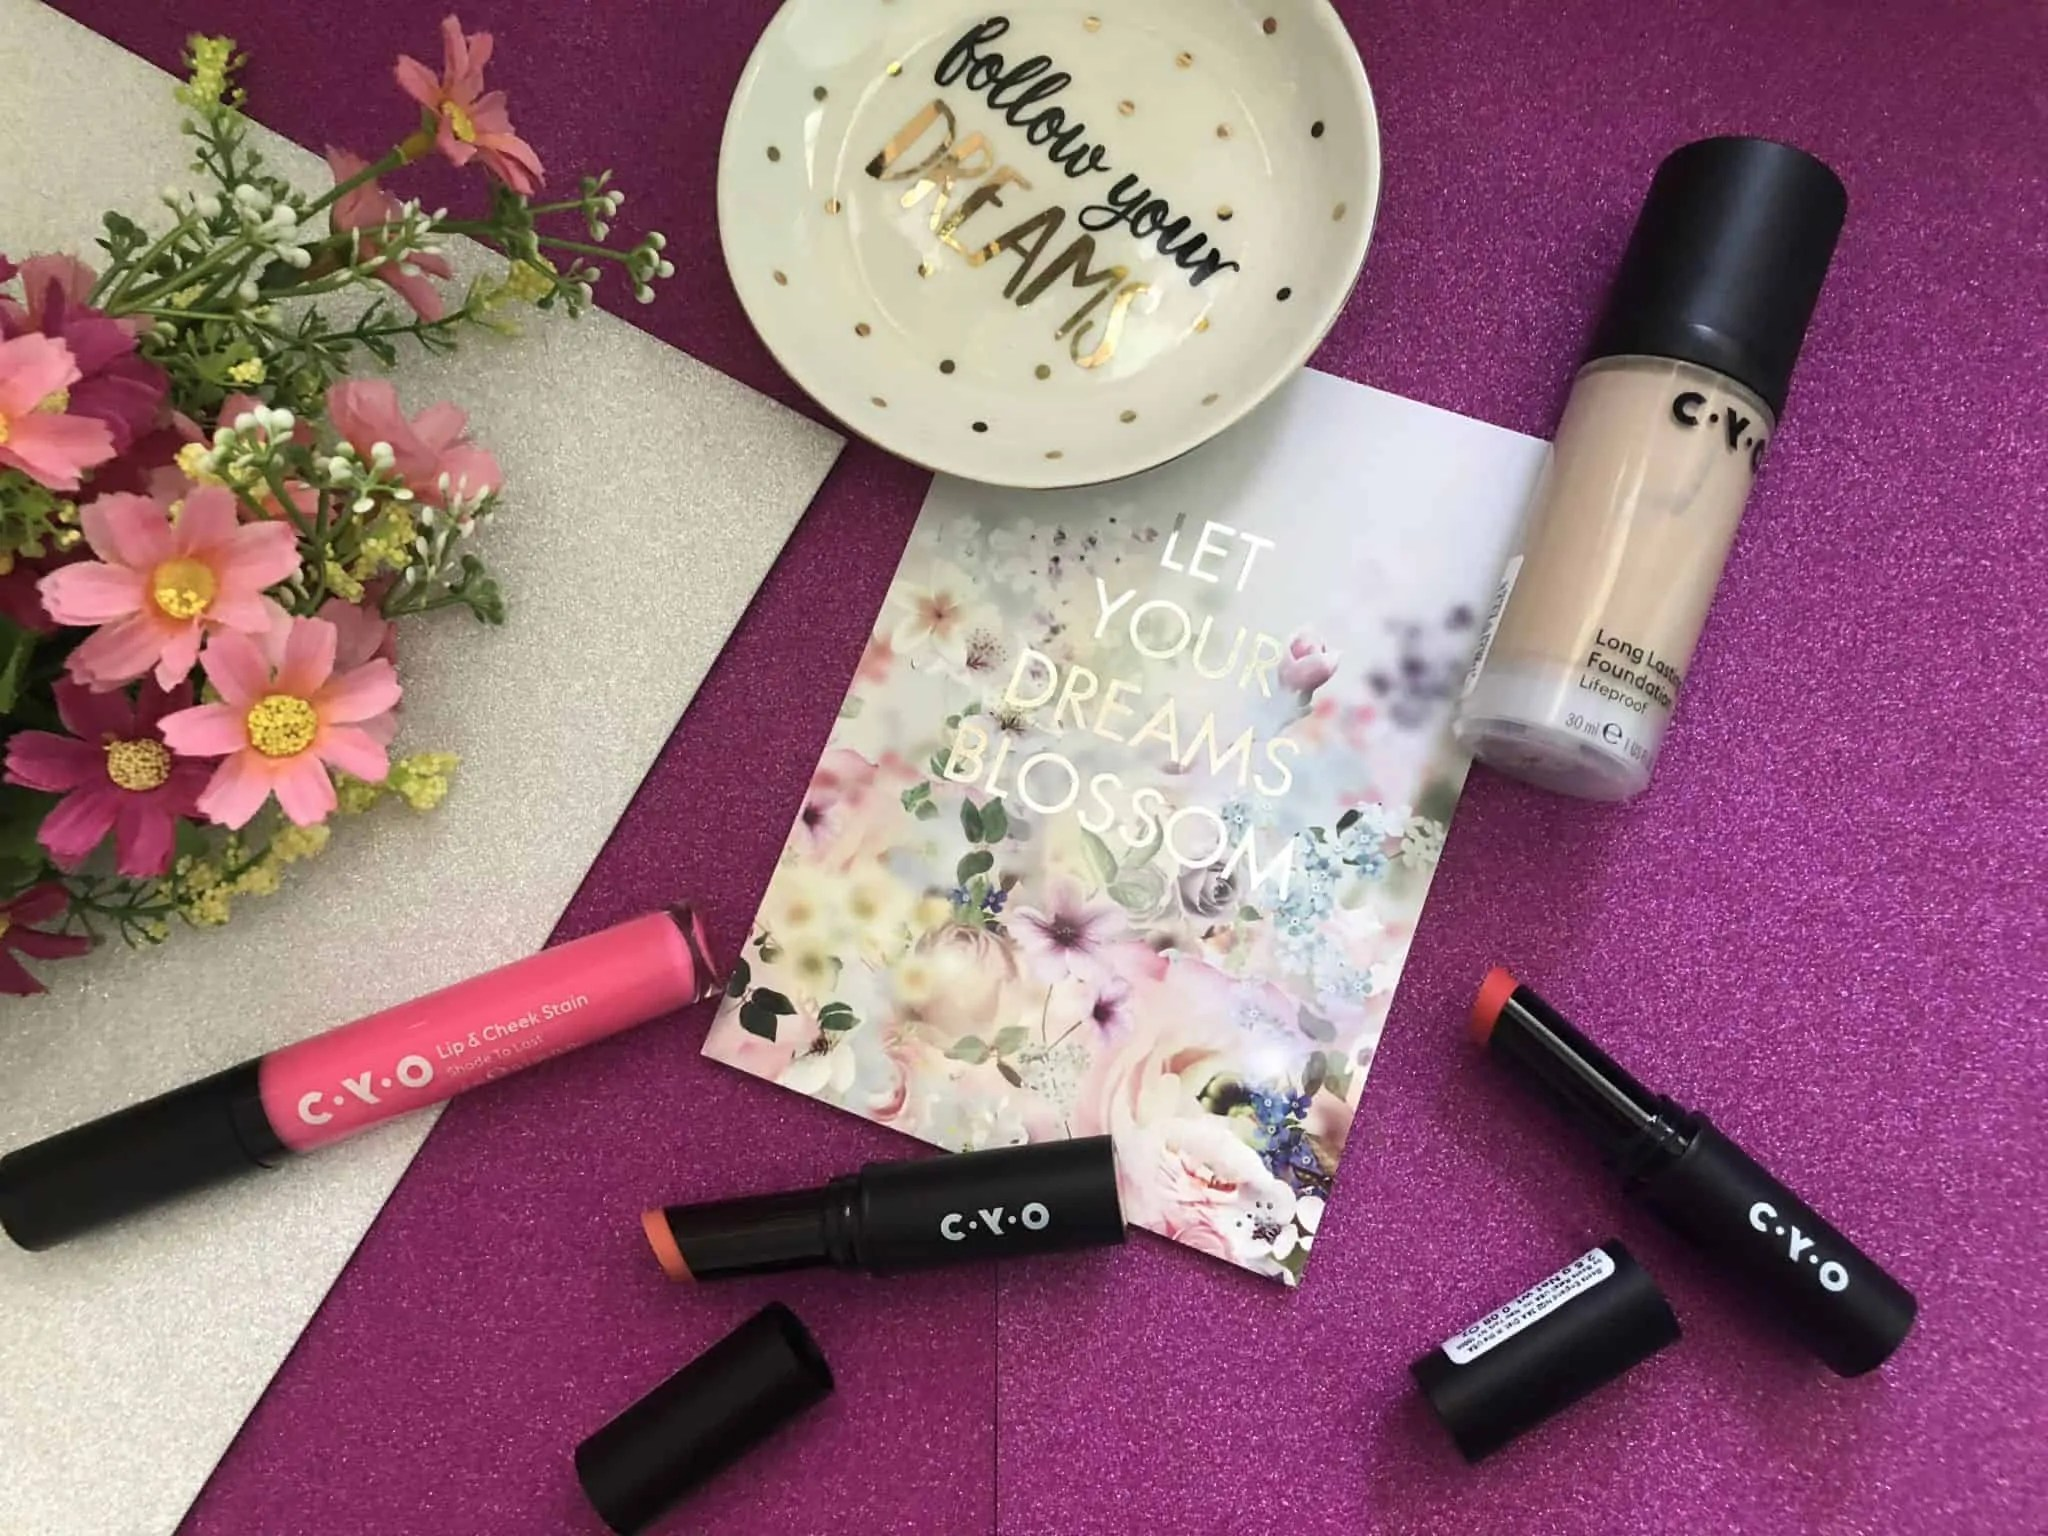 CYO cosmetics hits UK shores - you won't want to miss what I bought in my first CYO haul